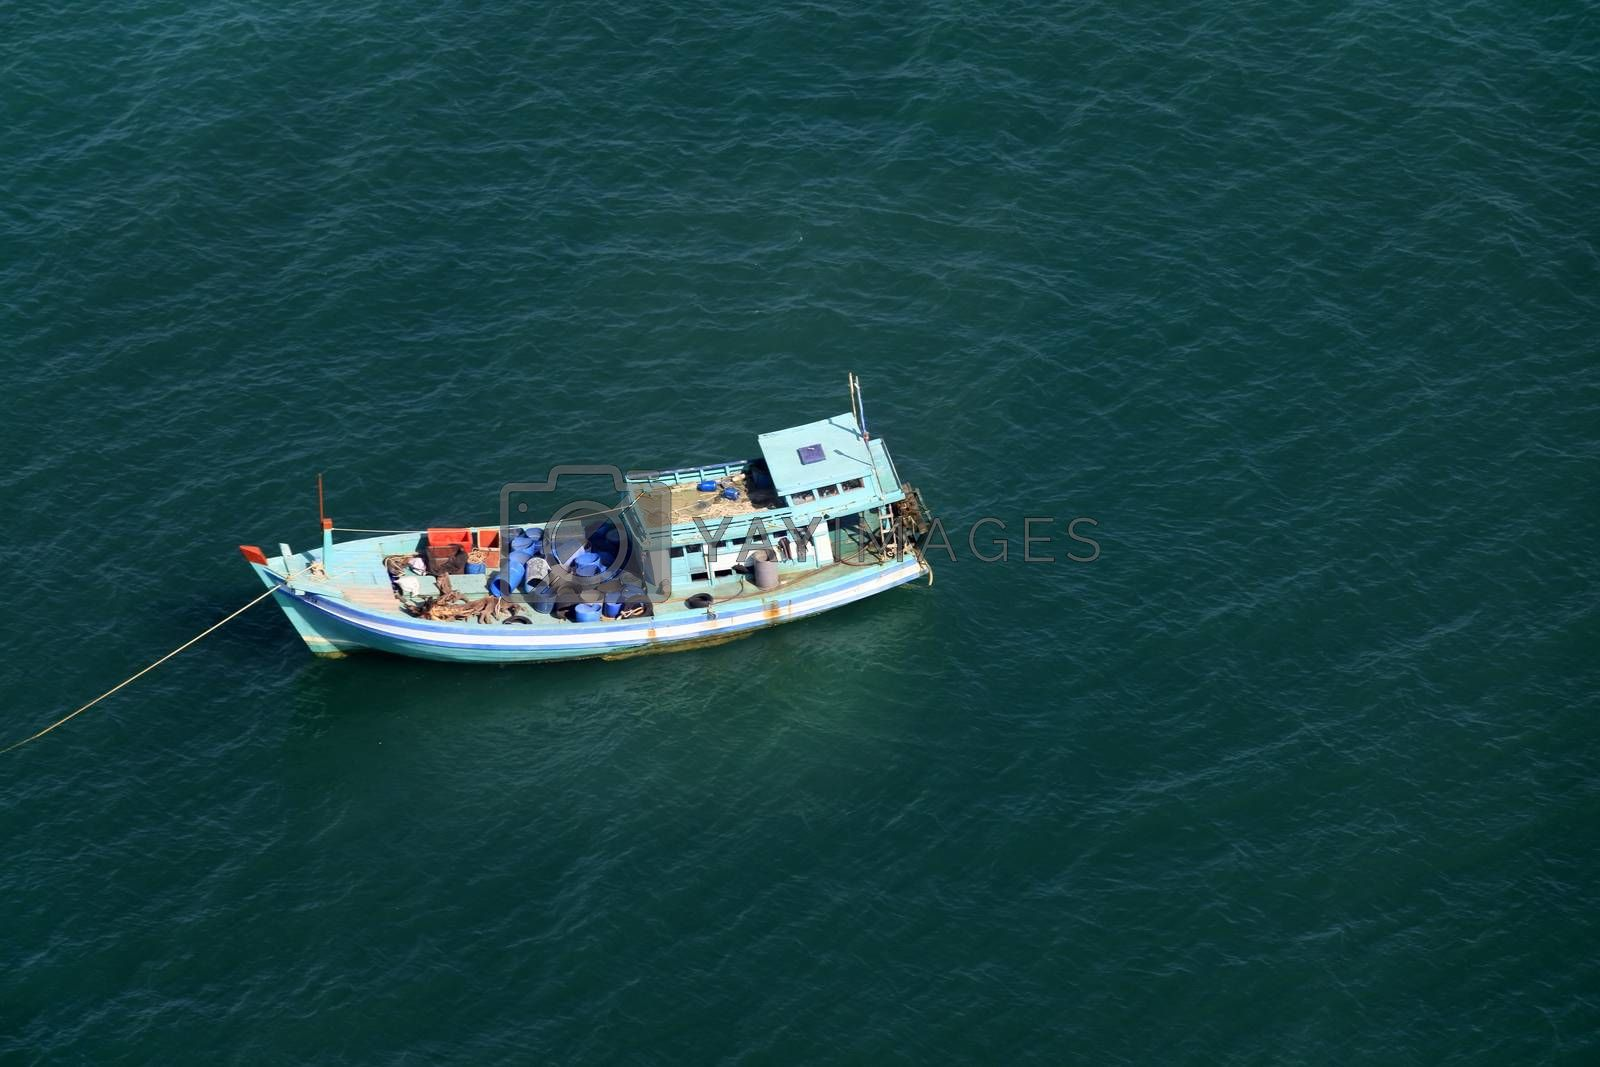 Aerial view  boat at the turquoise sea in Vietnam, Phu Quoc